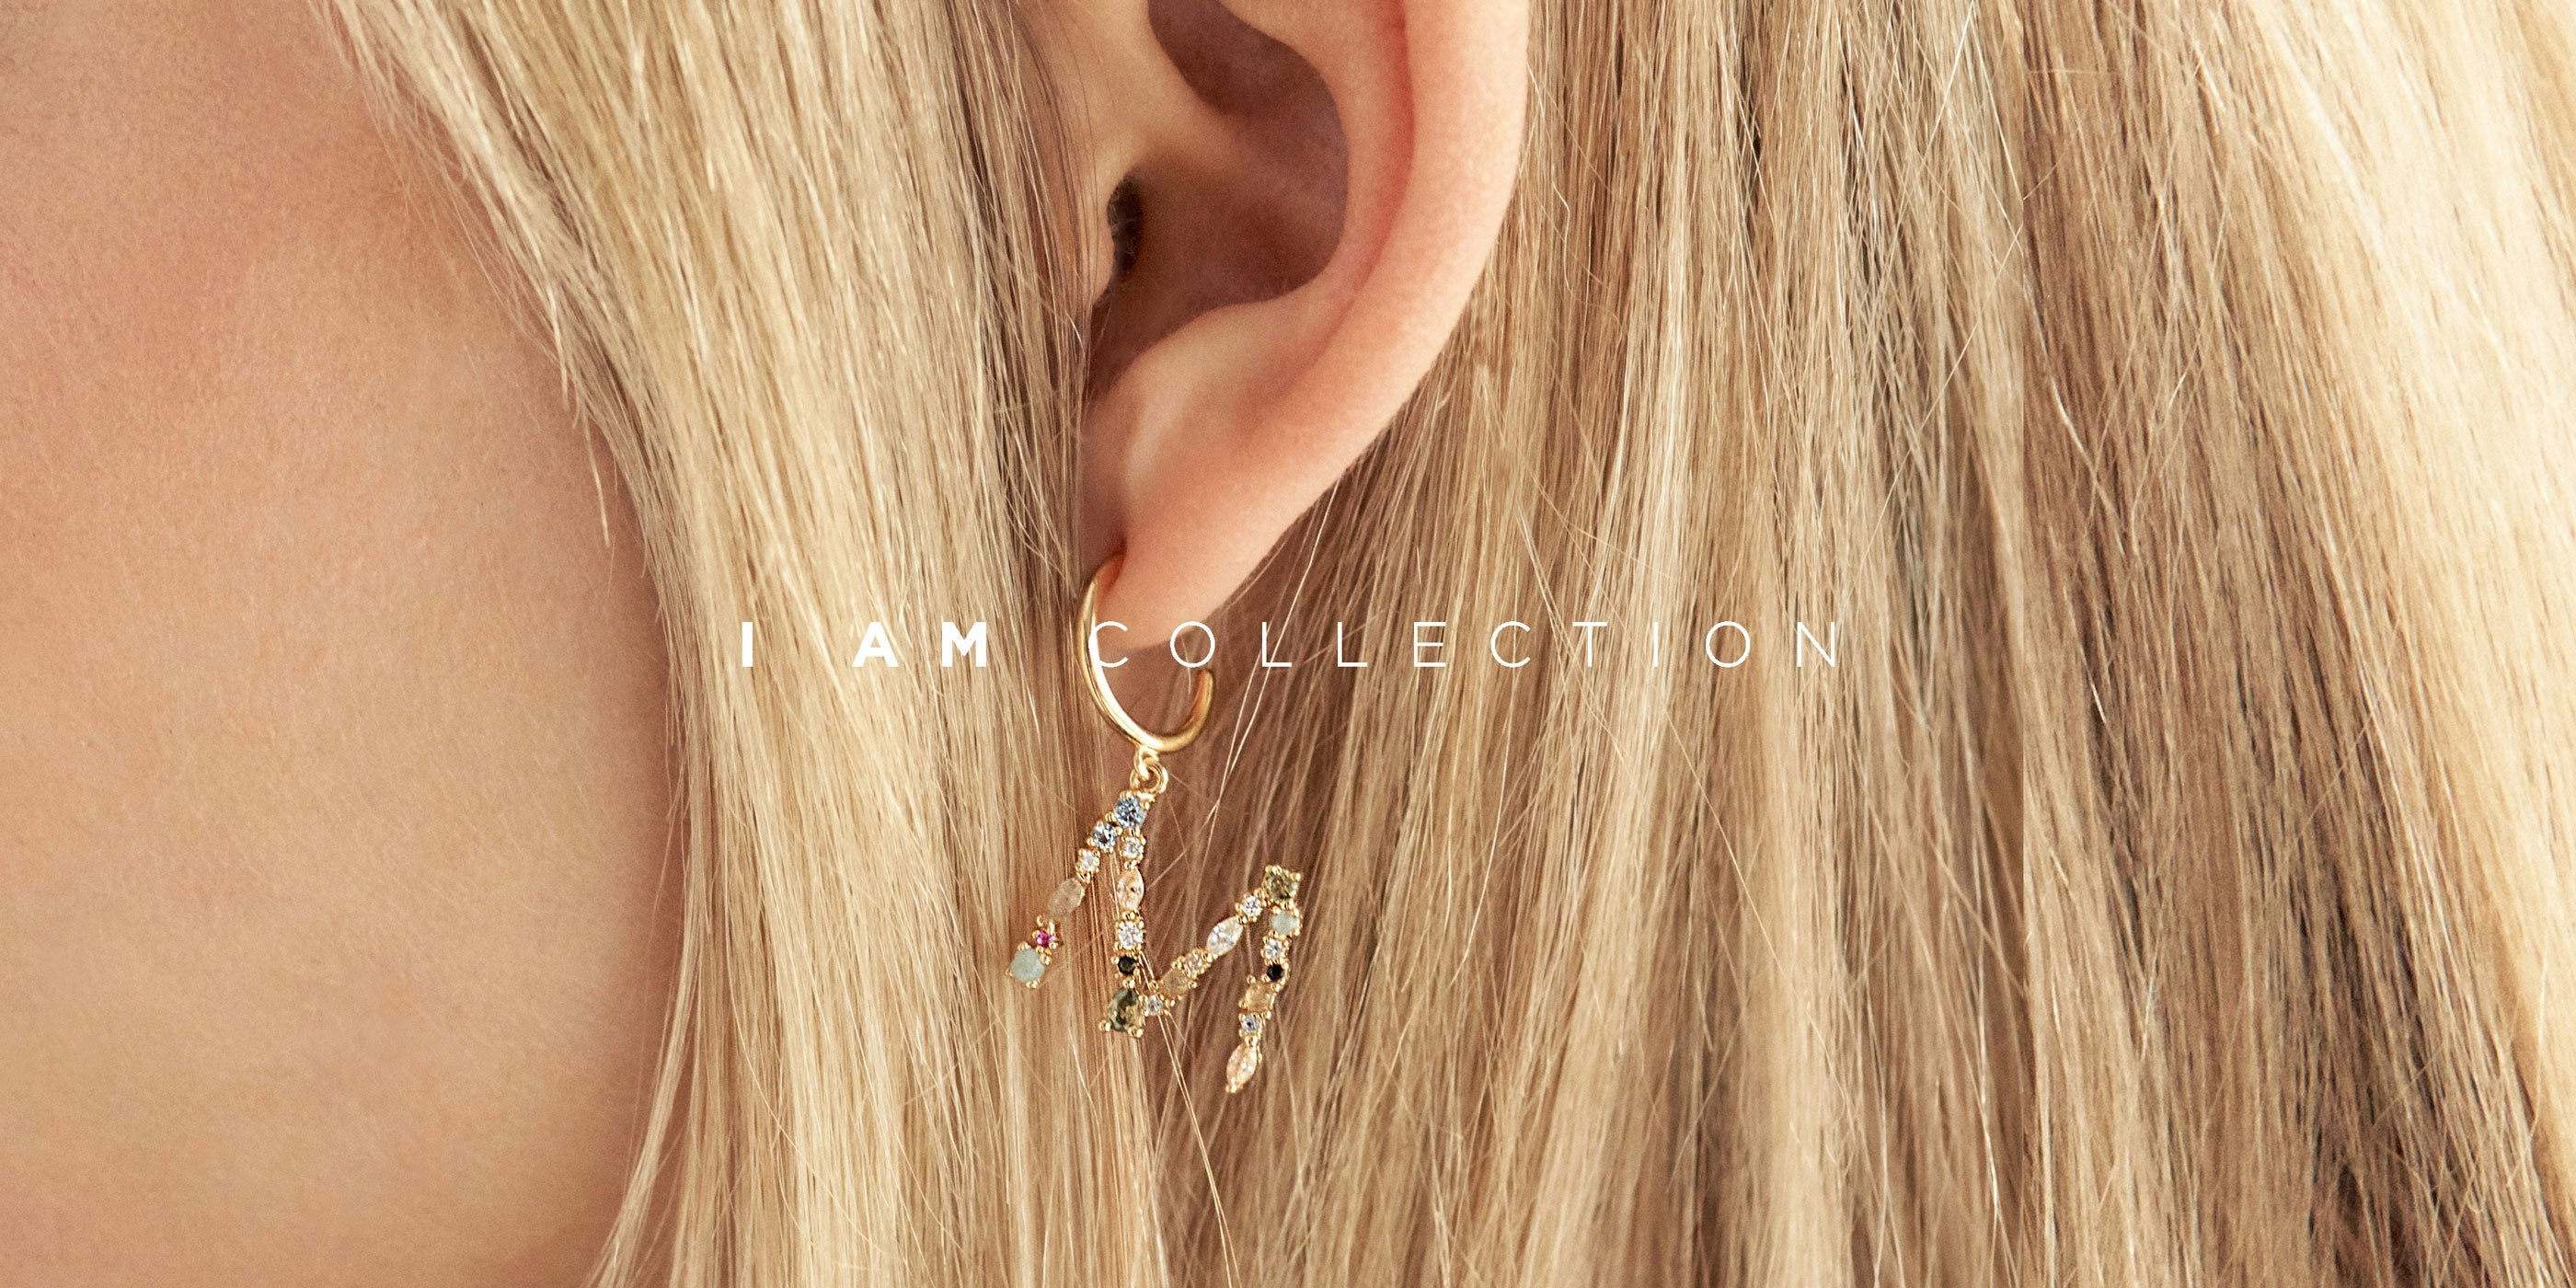 I AM Collection · Ear Stories